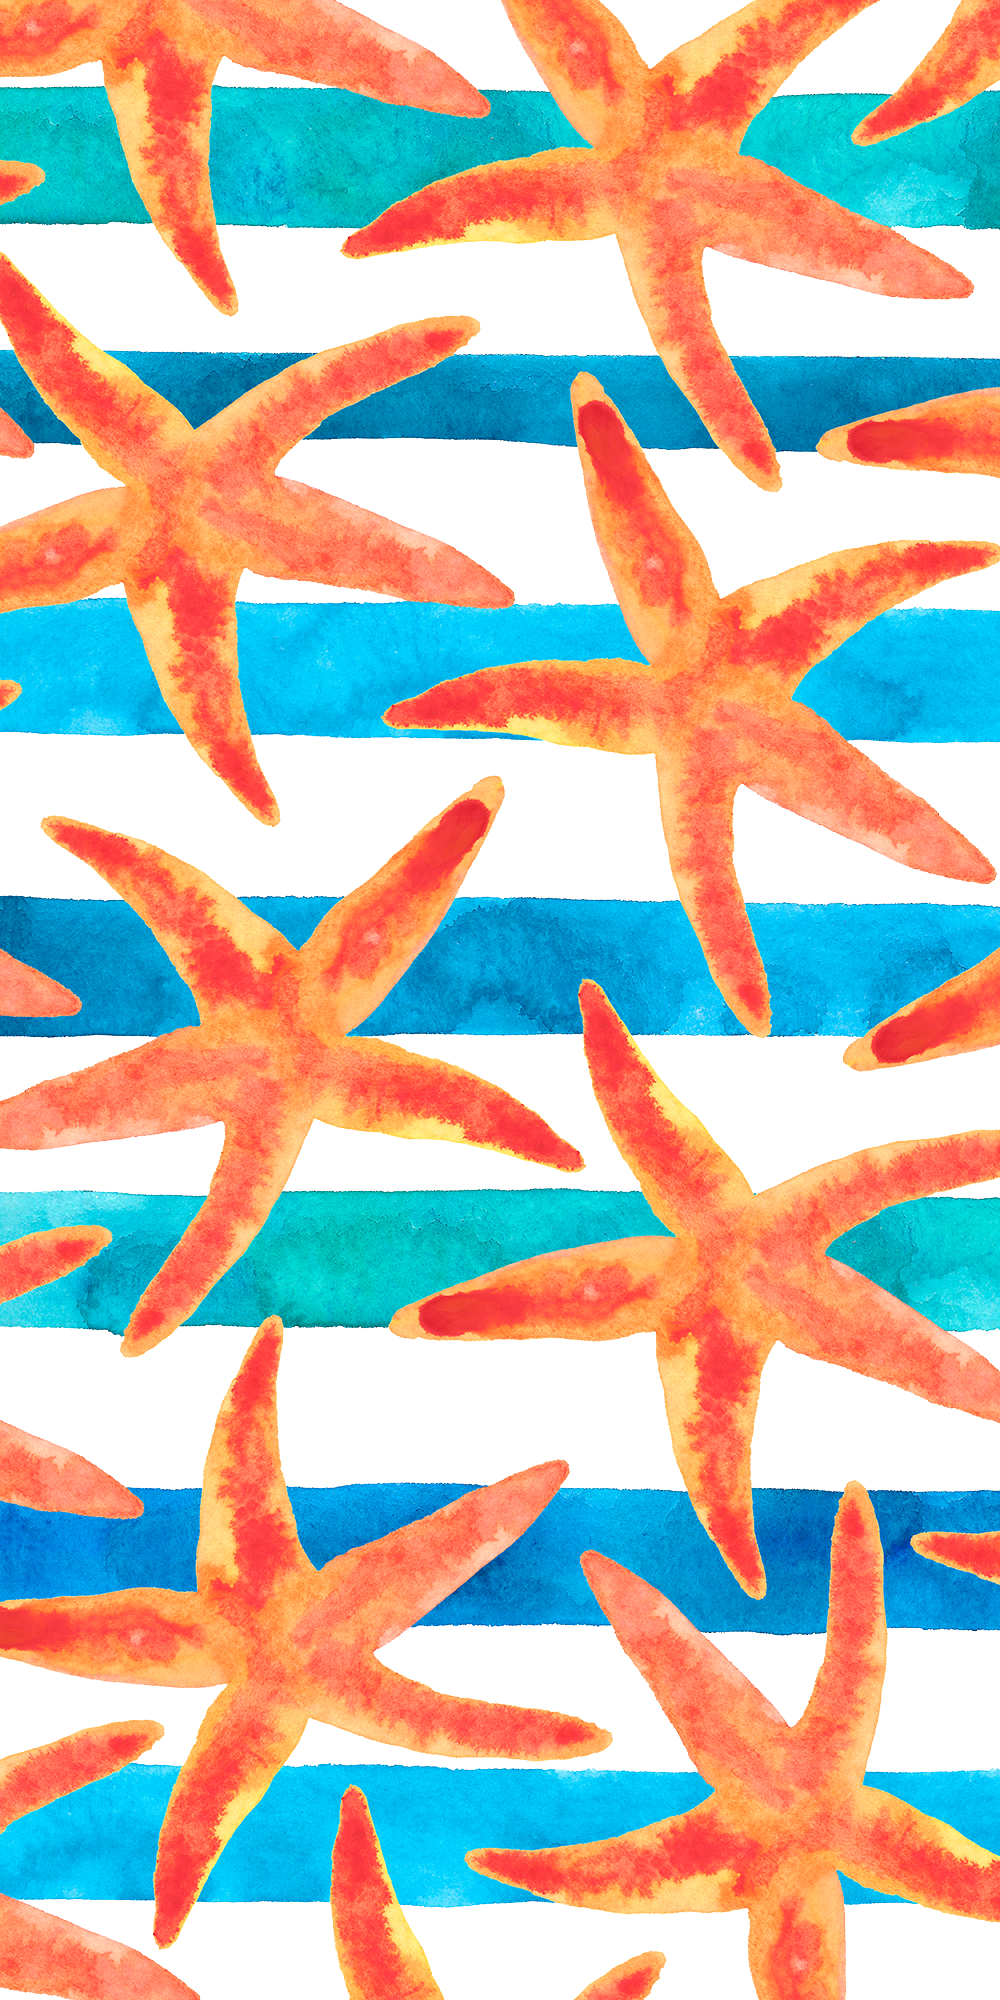 Starfish Pattern Casetify Iphone Art Design Illustration Beachy Wallpaper Nautical Wallpaper Beach Wallpaper Iphone